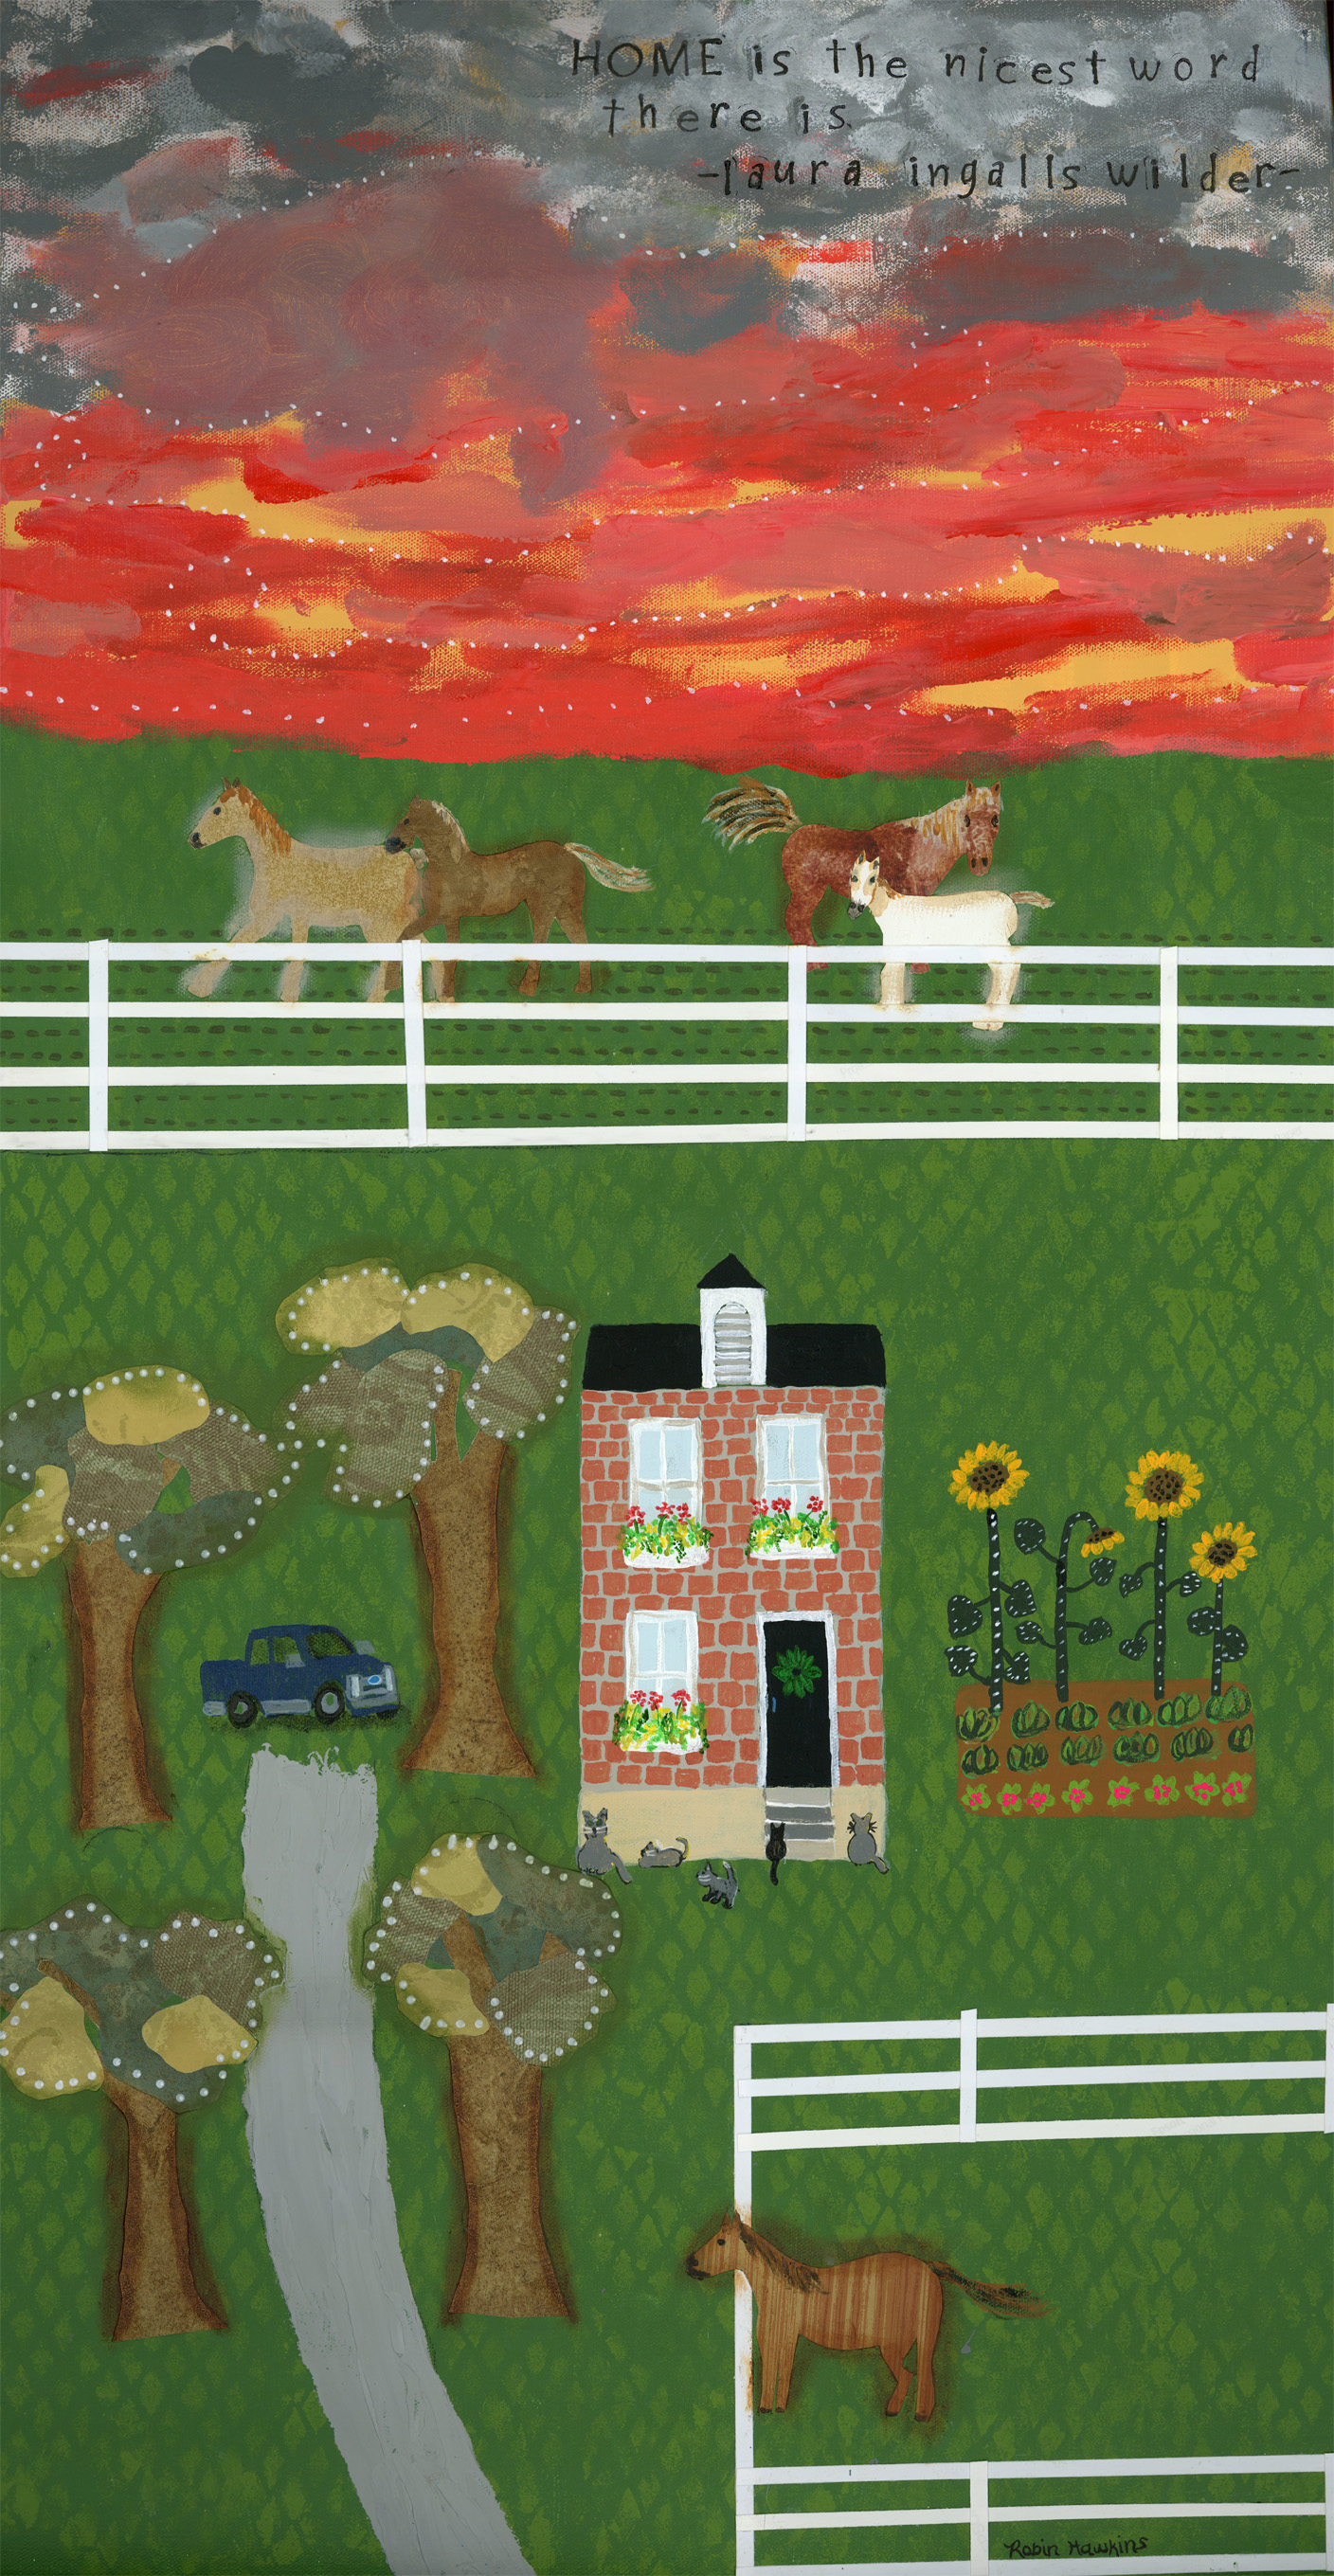 A long painting of a sunrise overlooking a pasture of horses and a vintage brick home with a tree lined drive and a pickup.  There is a garden with sunflowers and another fenced in horse that greets all the guests at the driveway.